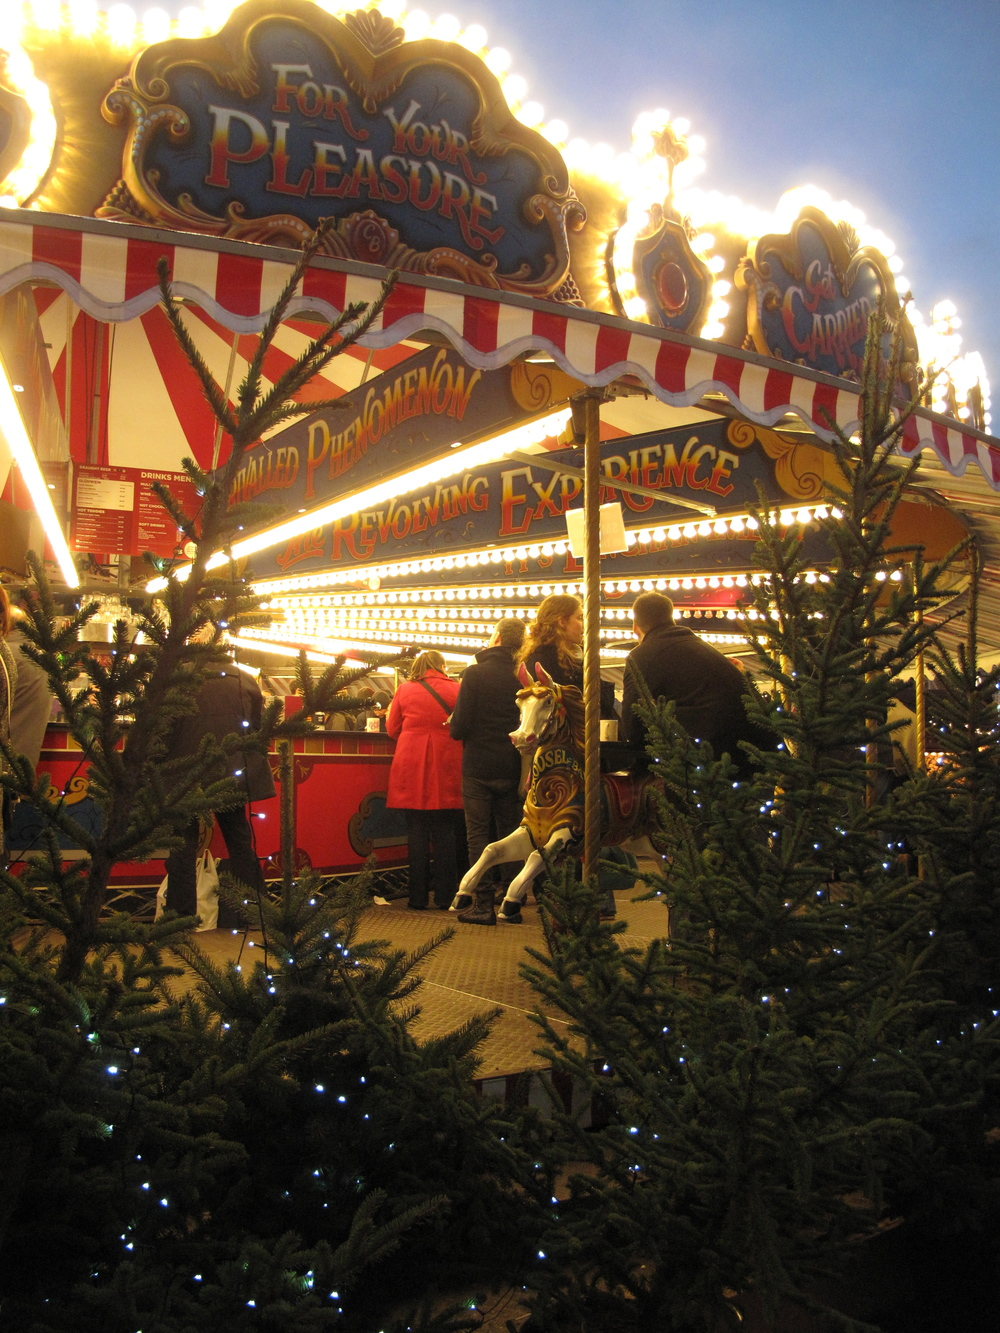 Merry go round with bright stripes at night, in the Edinburgh christmas market.